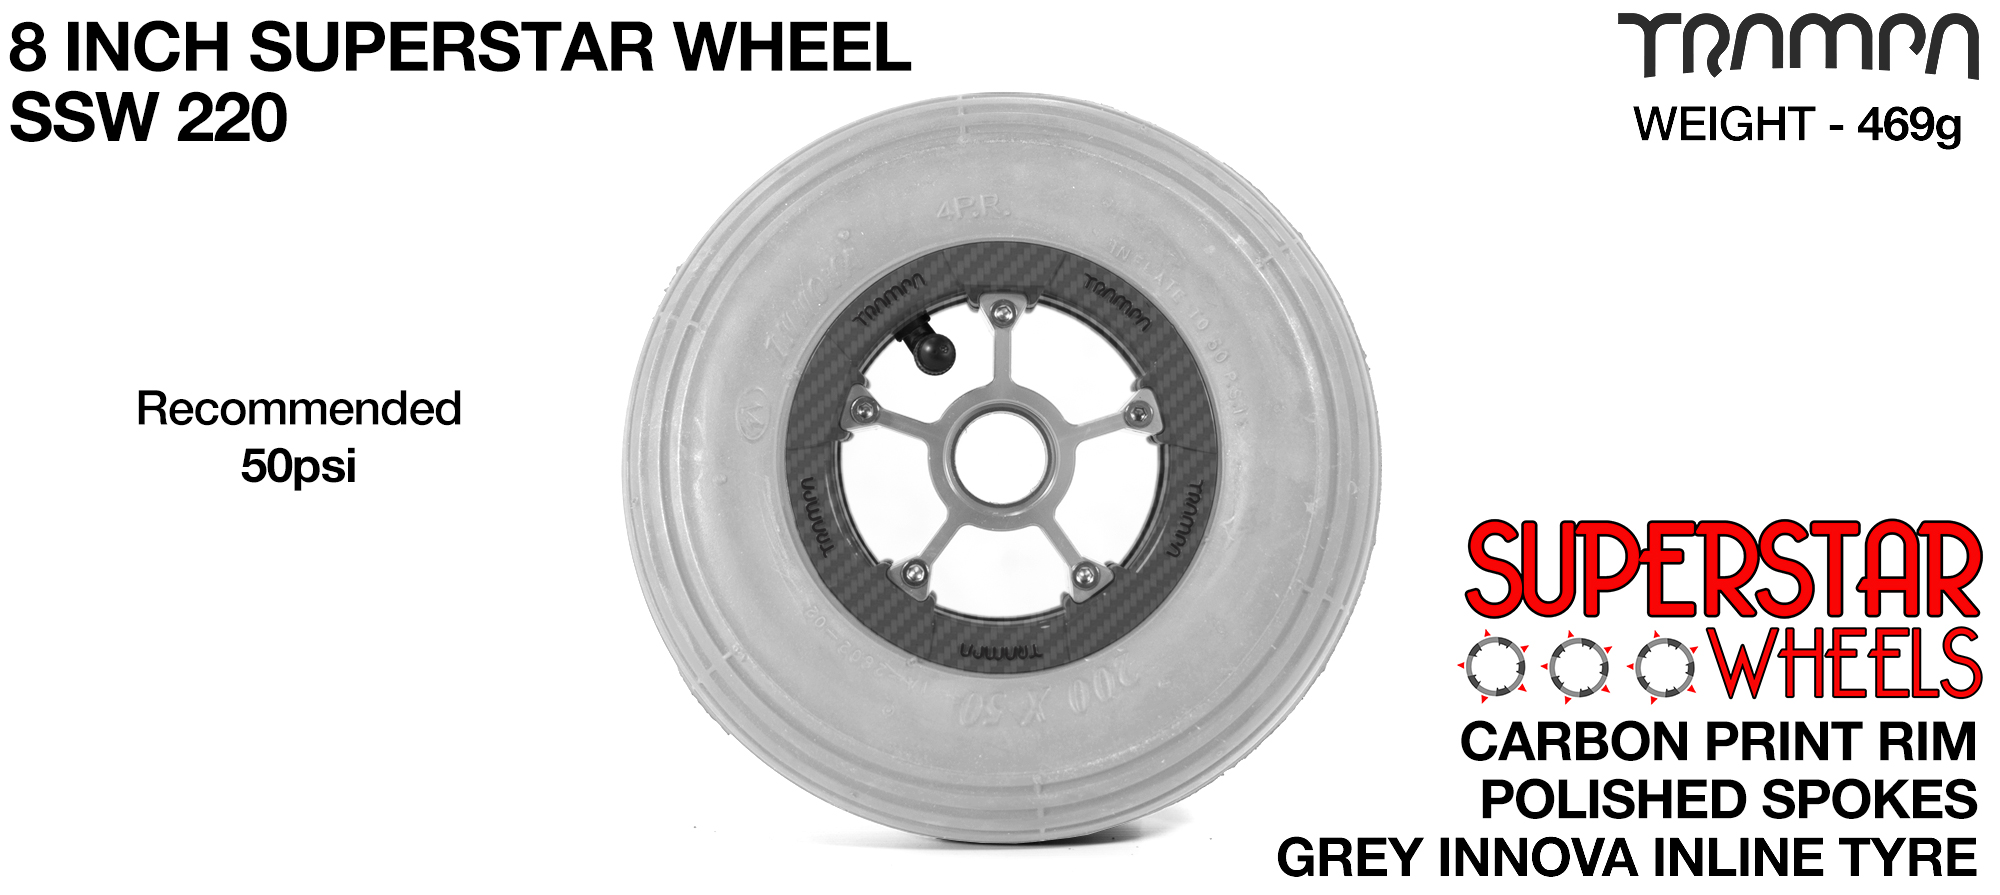 Superstar 8 Inch Wheel - Carbon Superstar Rim Silver Anodised Spokes & Grey 8 Inch Inline Tyre